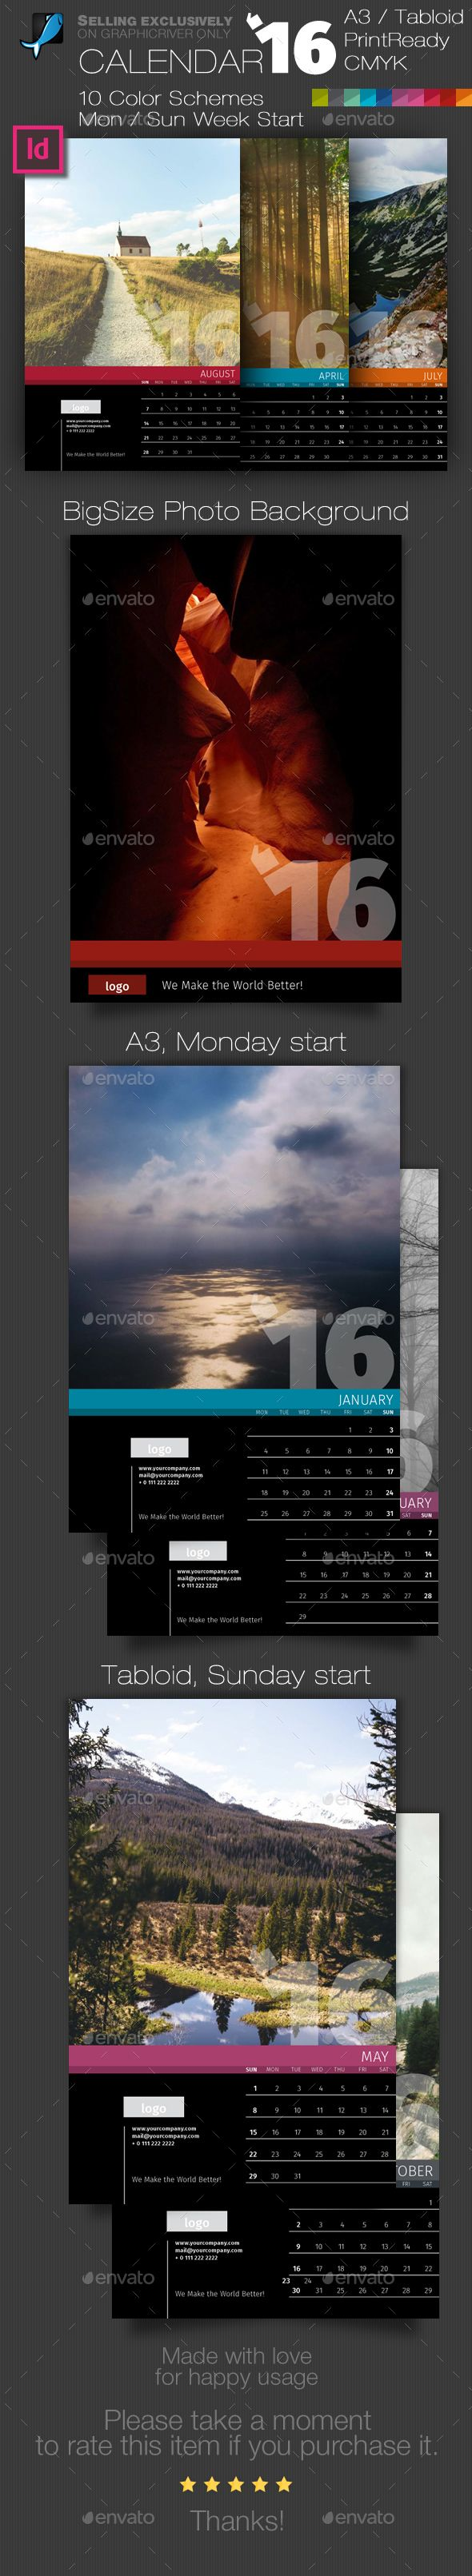 Wall 12 Pages Calendar 2016 with Big Size Photo Background — A3 and Tabloid. Download here: https://graphicriver.net/item/wall-12-pages-calendar-2016-with-big-size-photo-background-a3-and-tabloid/14147183?ref=ksioks